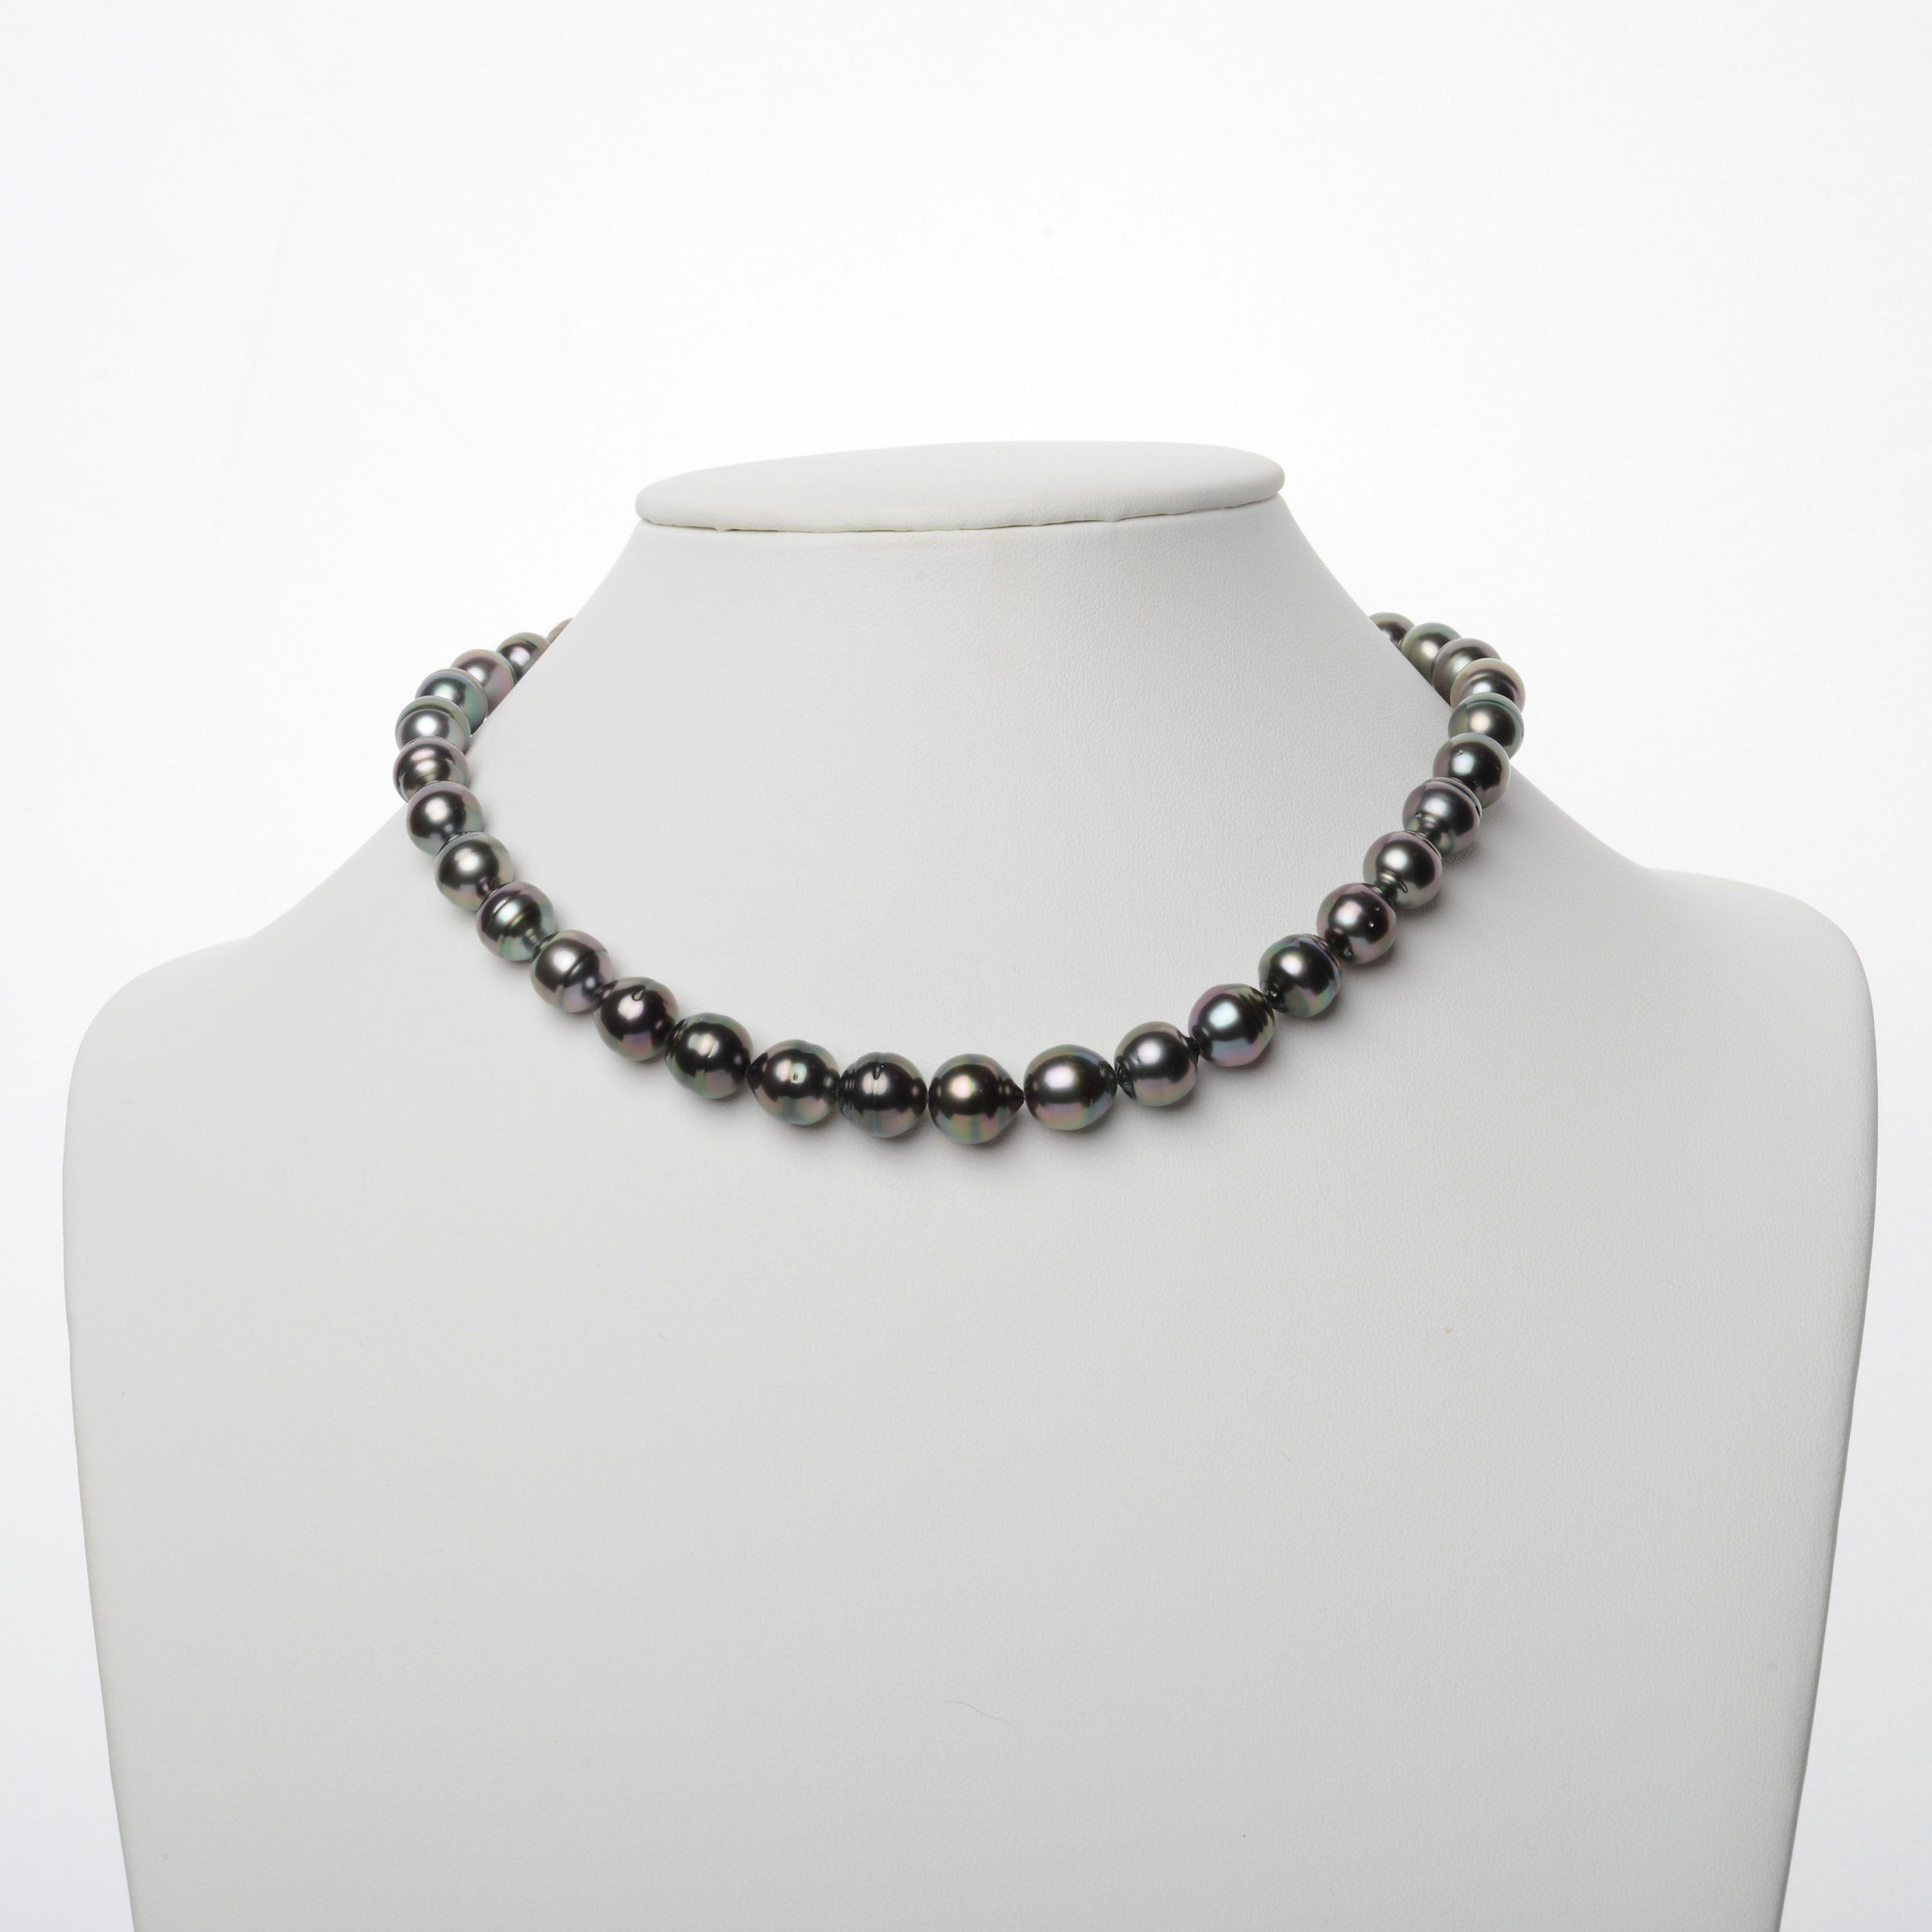 9.1-11.8 mm AA+/AAA Tahitian Baroque Pearl Necklace